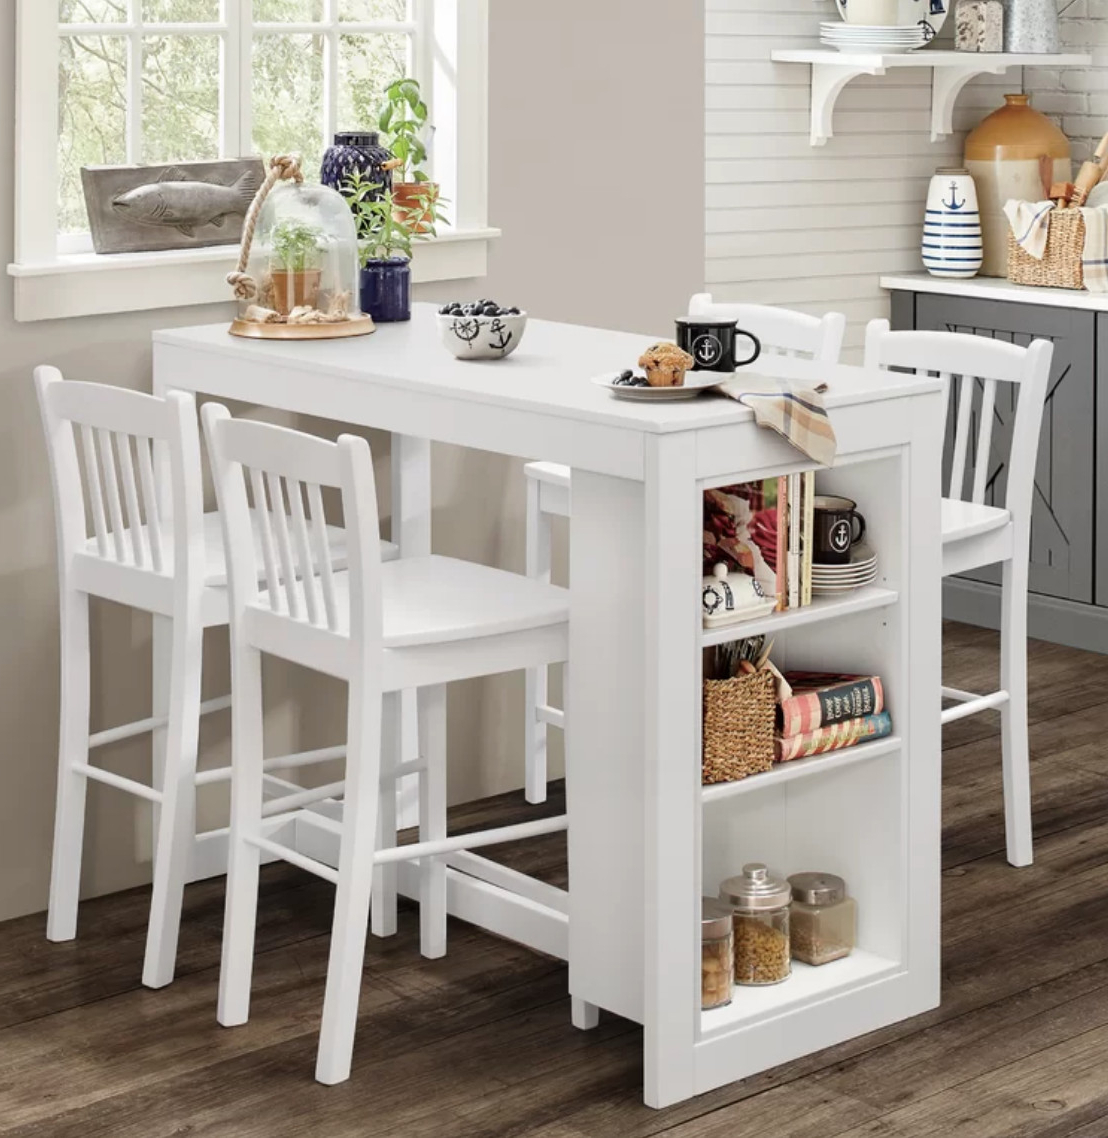 Taulbee 5 Piece Dining Sets Regarding Famous Dining Tables For Small Spaces – Small Spaces – Lonny (View 23 of 25)